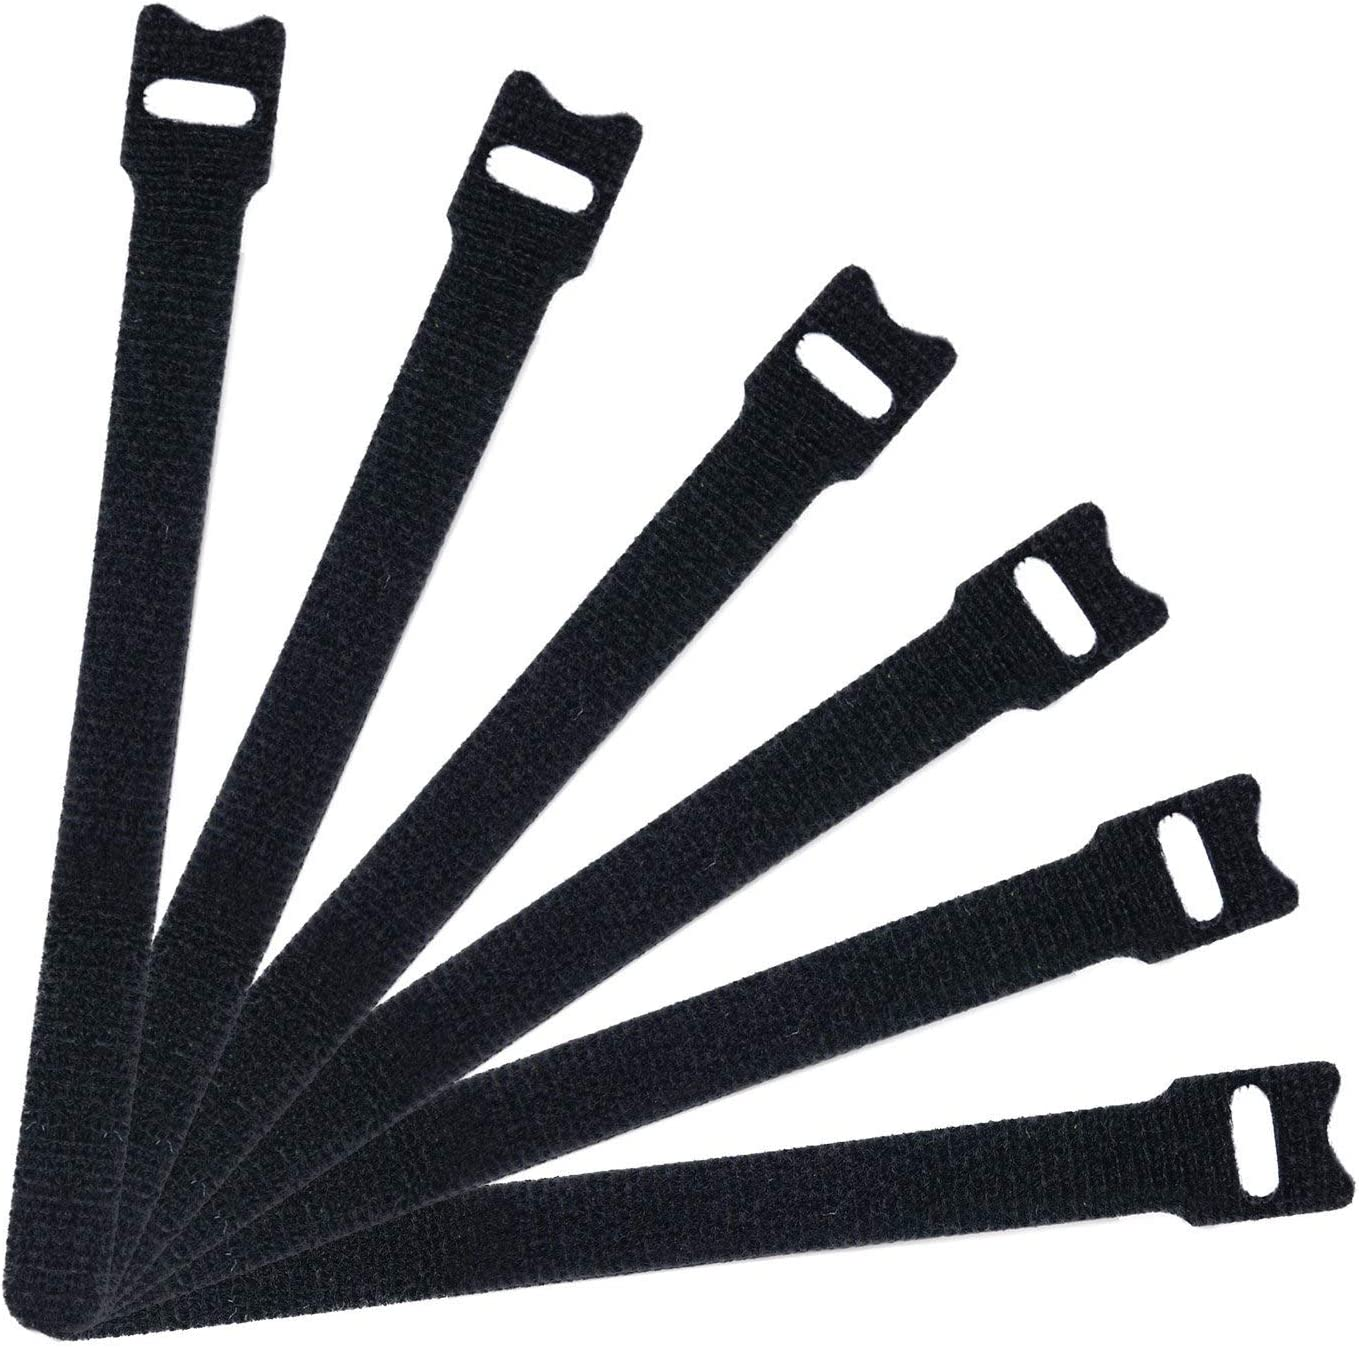 Attmu Cable Ties - photo